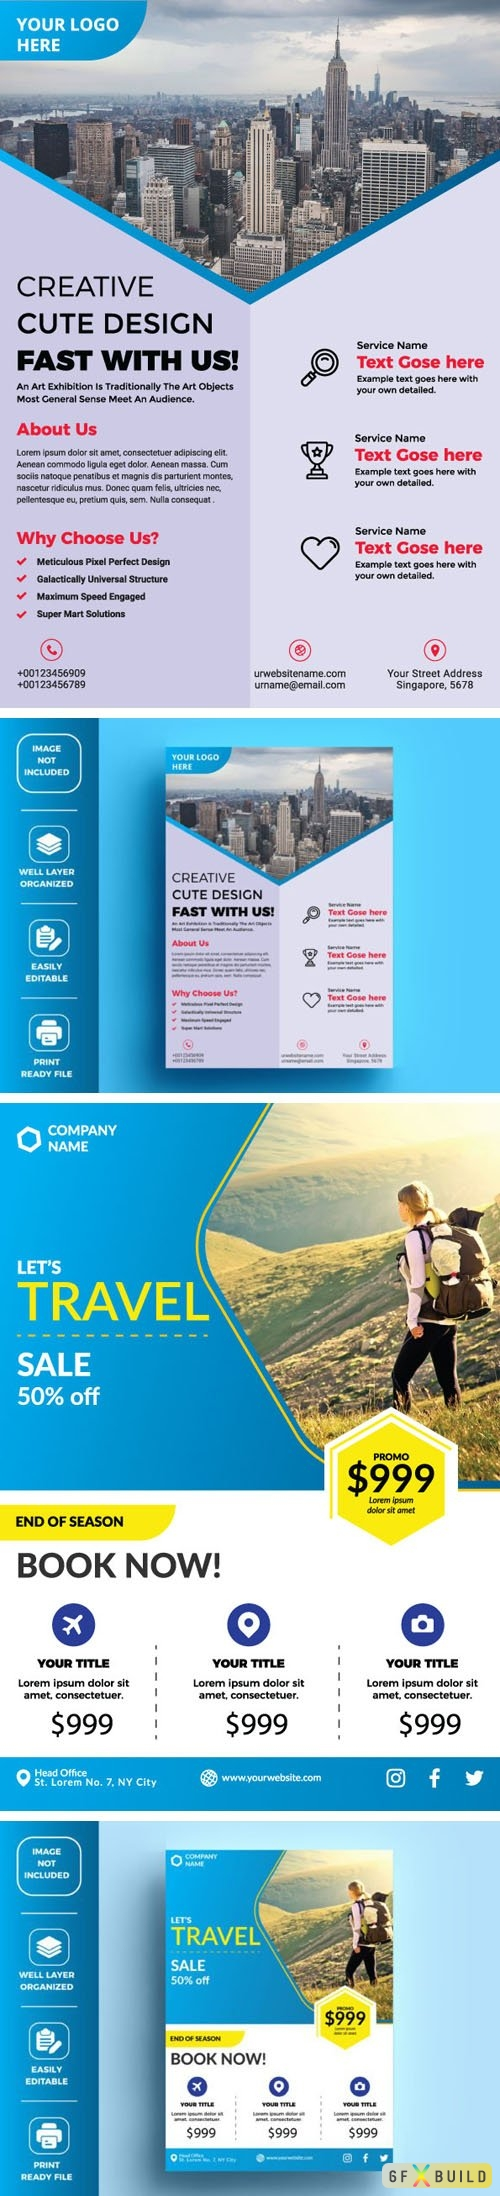 Two Corporate Business + Travel Flyers Vector Design Templates